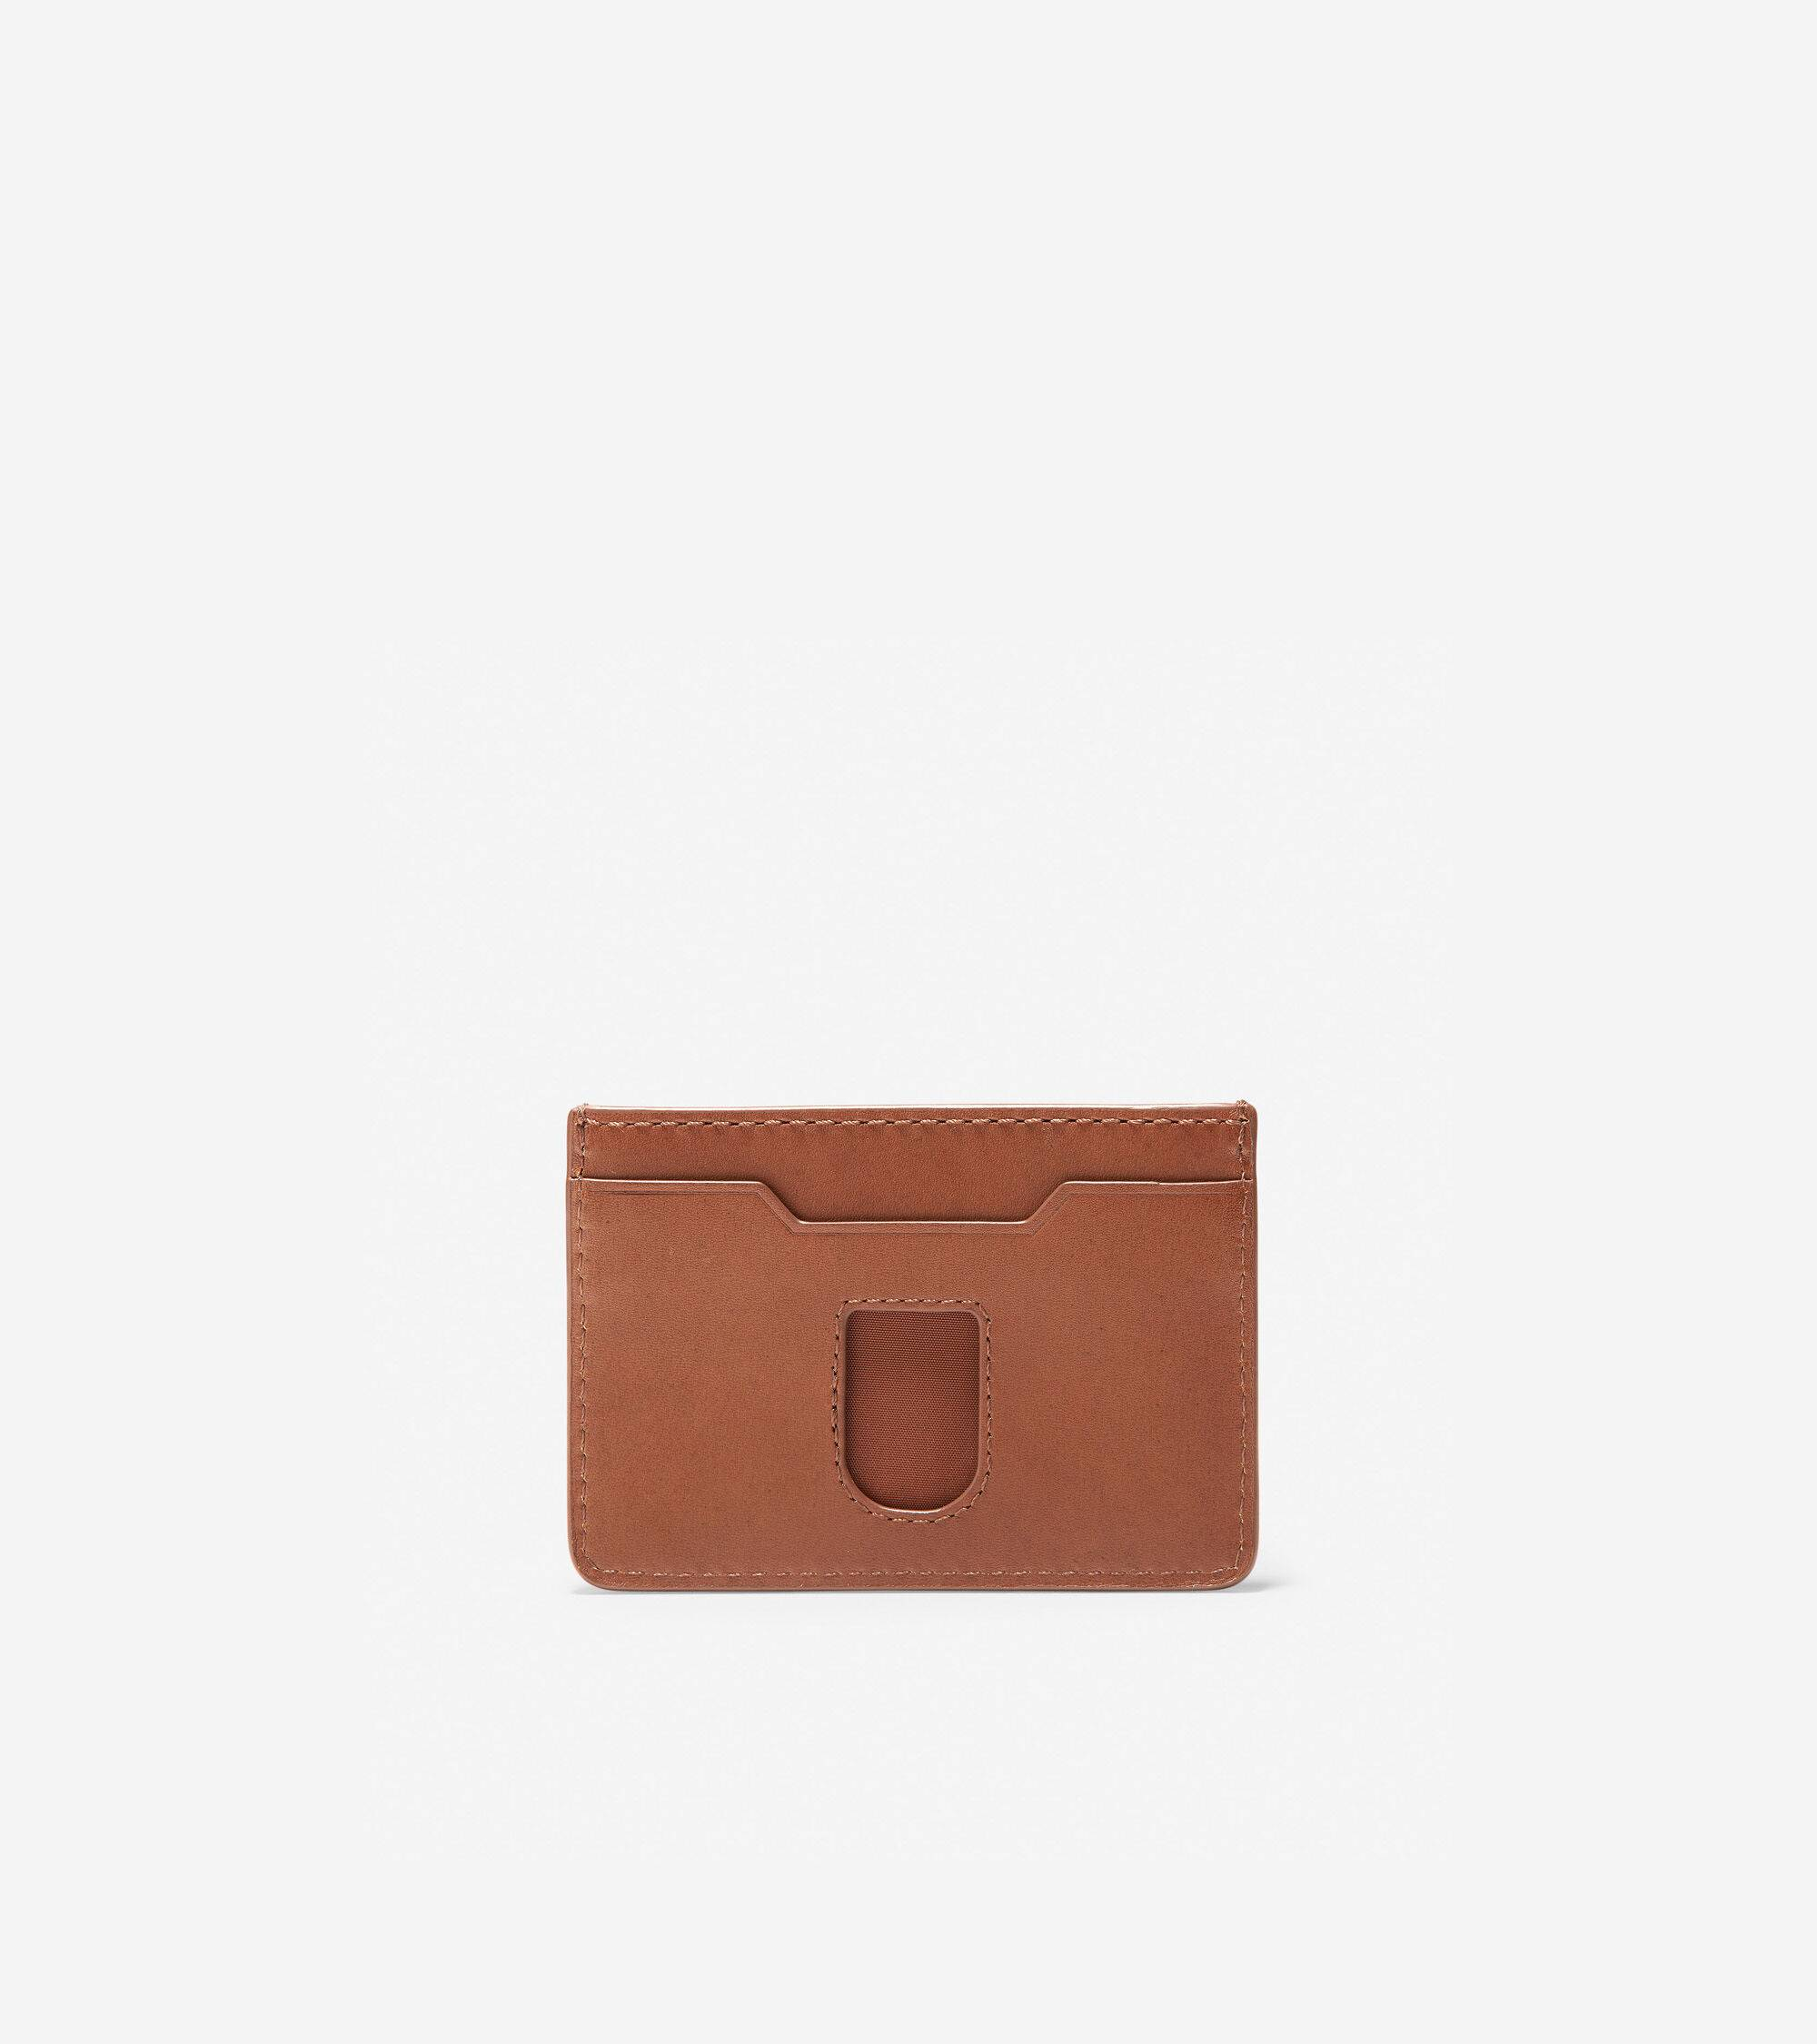 Cole Haan GRANDSERIES Leather Card Case - Brown - Size: OSFA